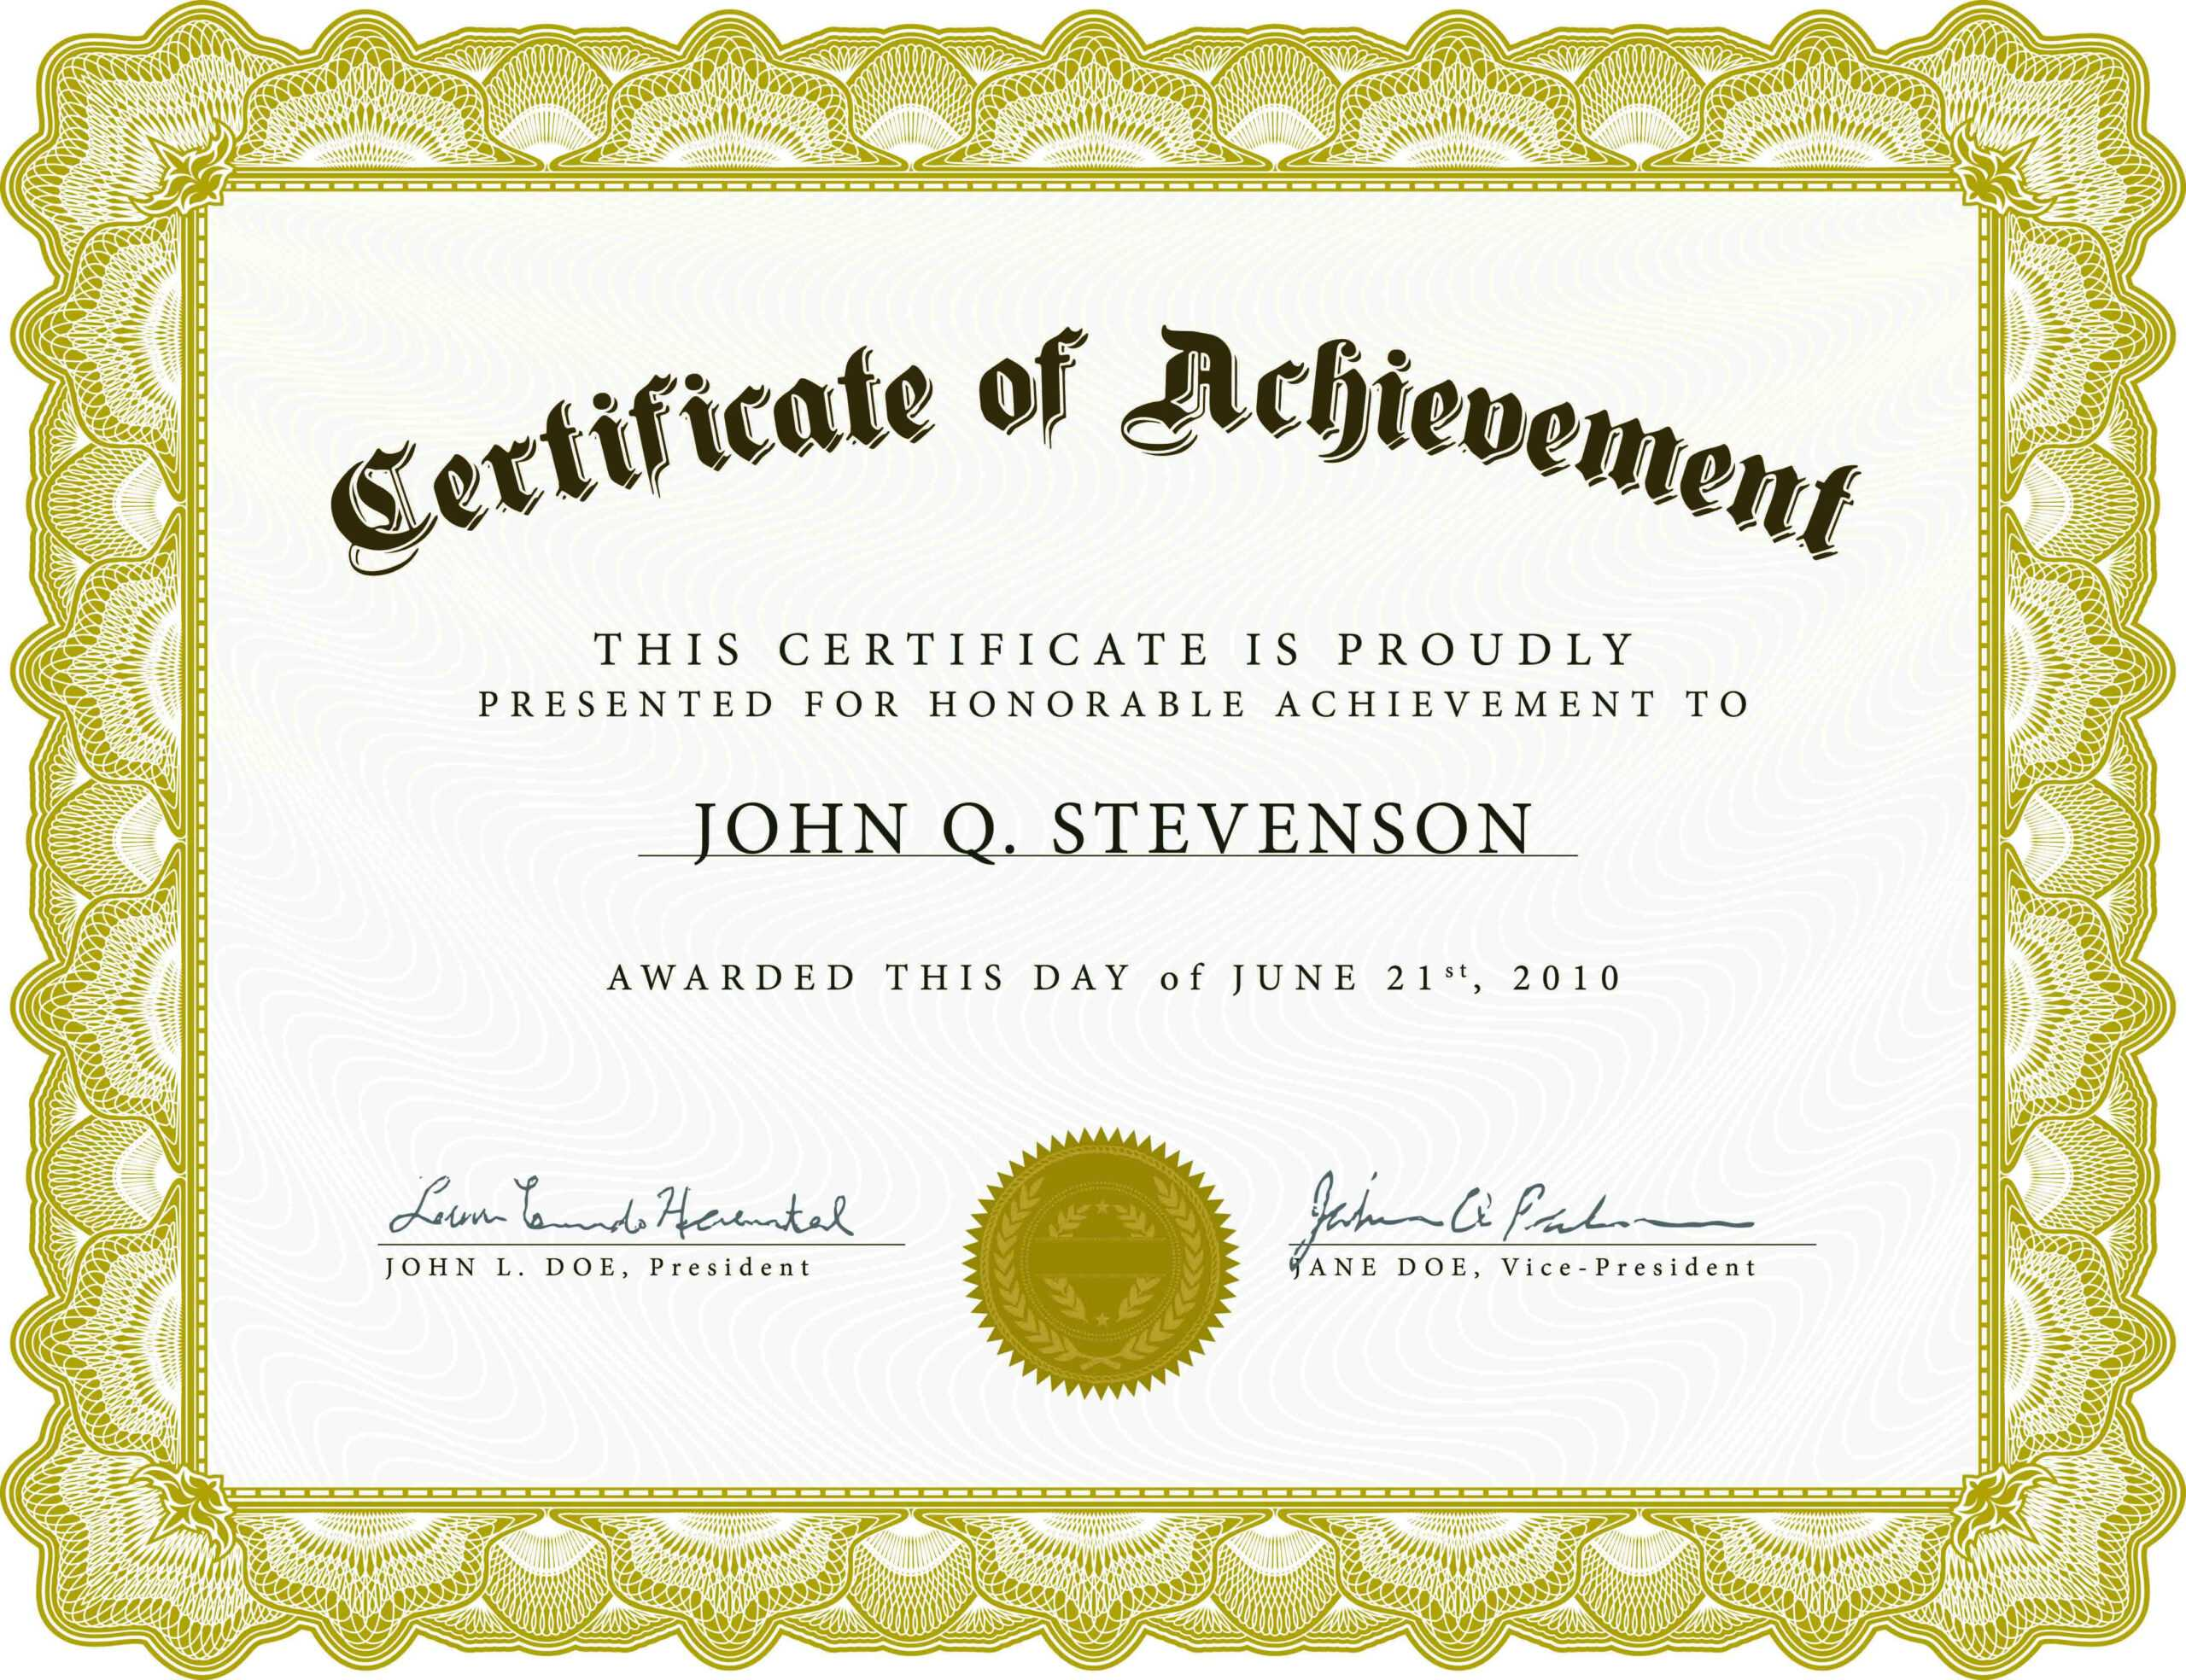 Download Blank Certificate Template X3Hr9Dto | Blank Regarding Blank Certificate Templates Free Download